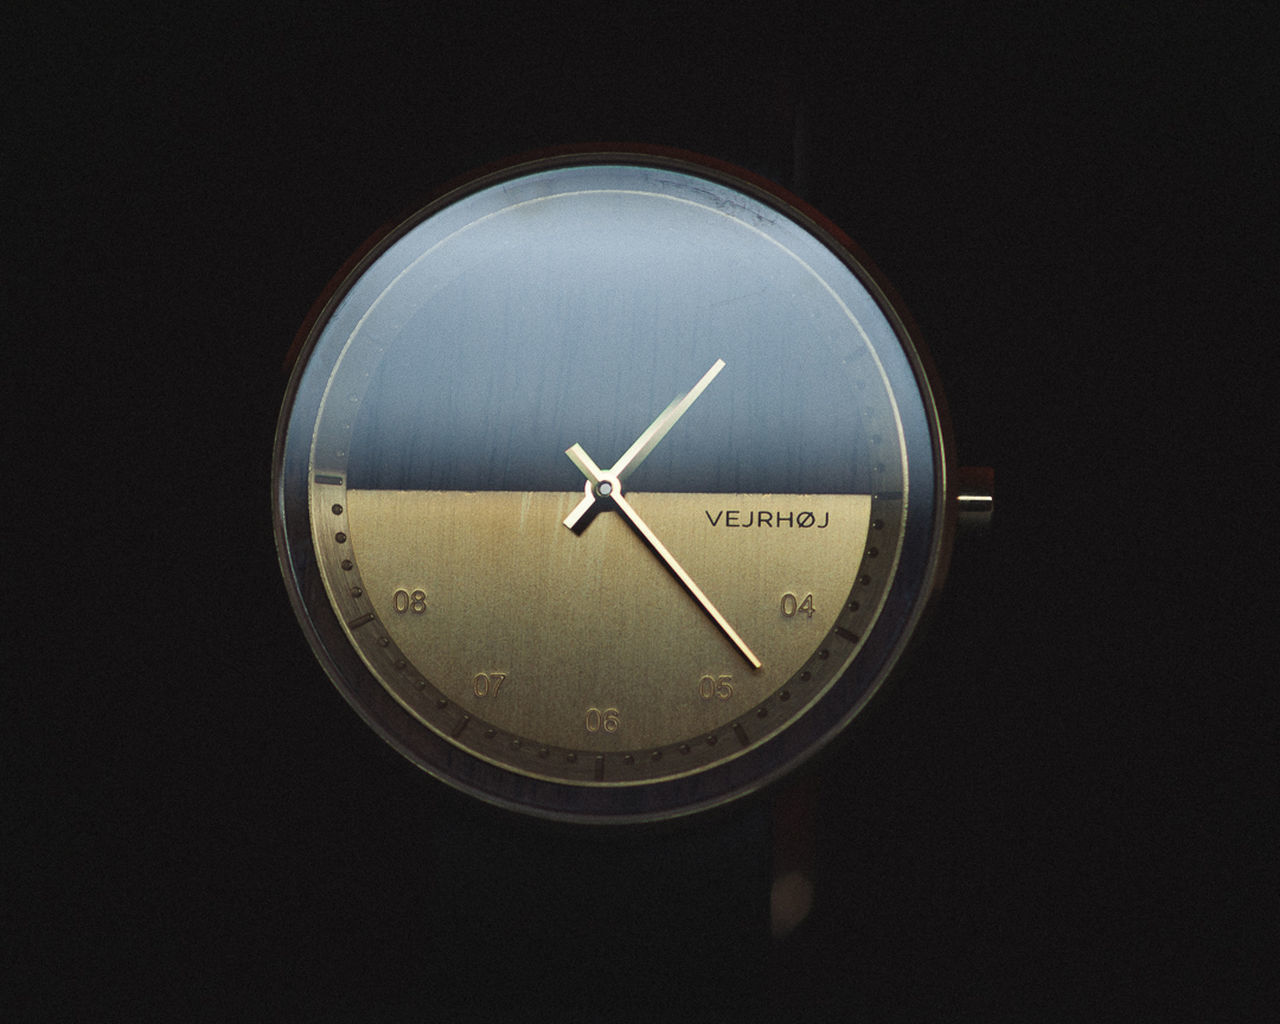 CLOSE-UP OF CLOCK ON BLACK BACKGROUND